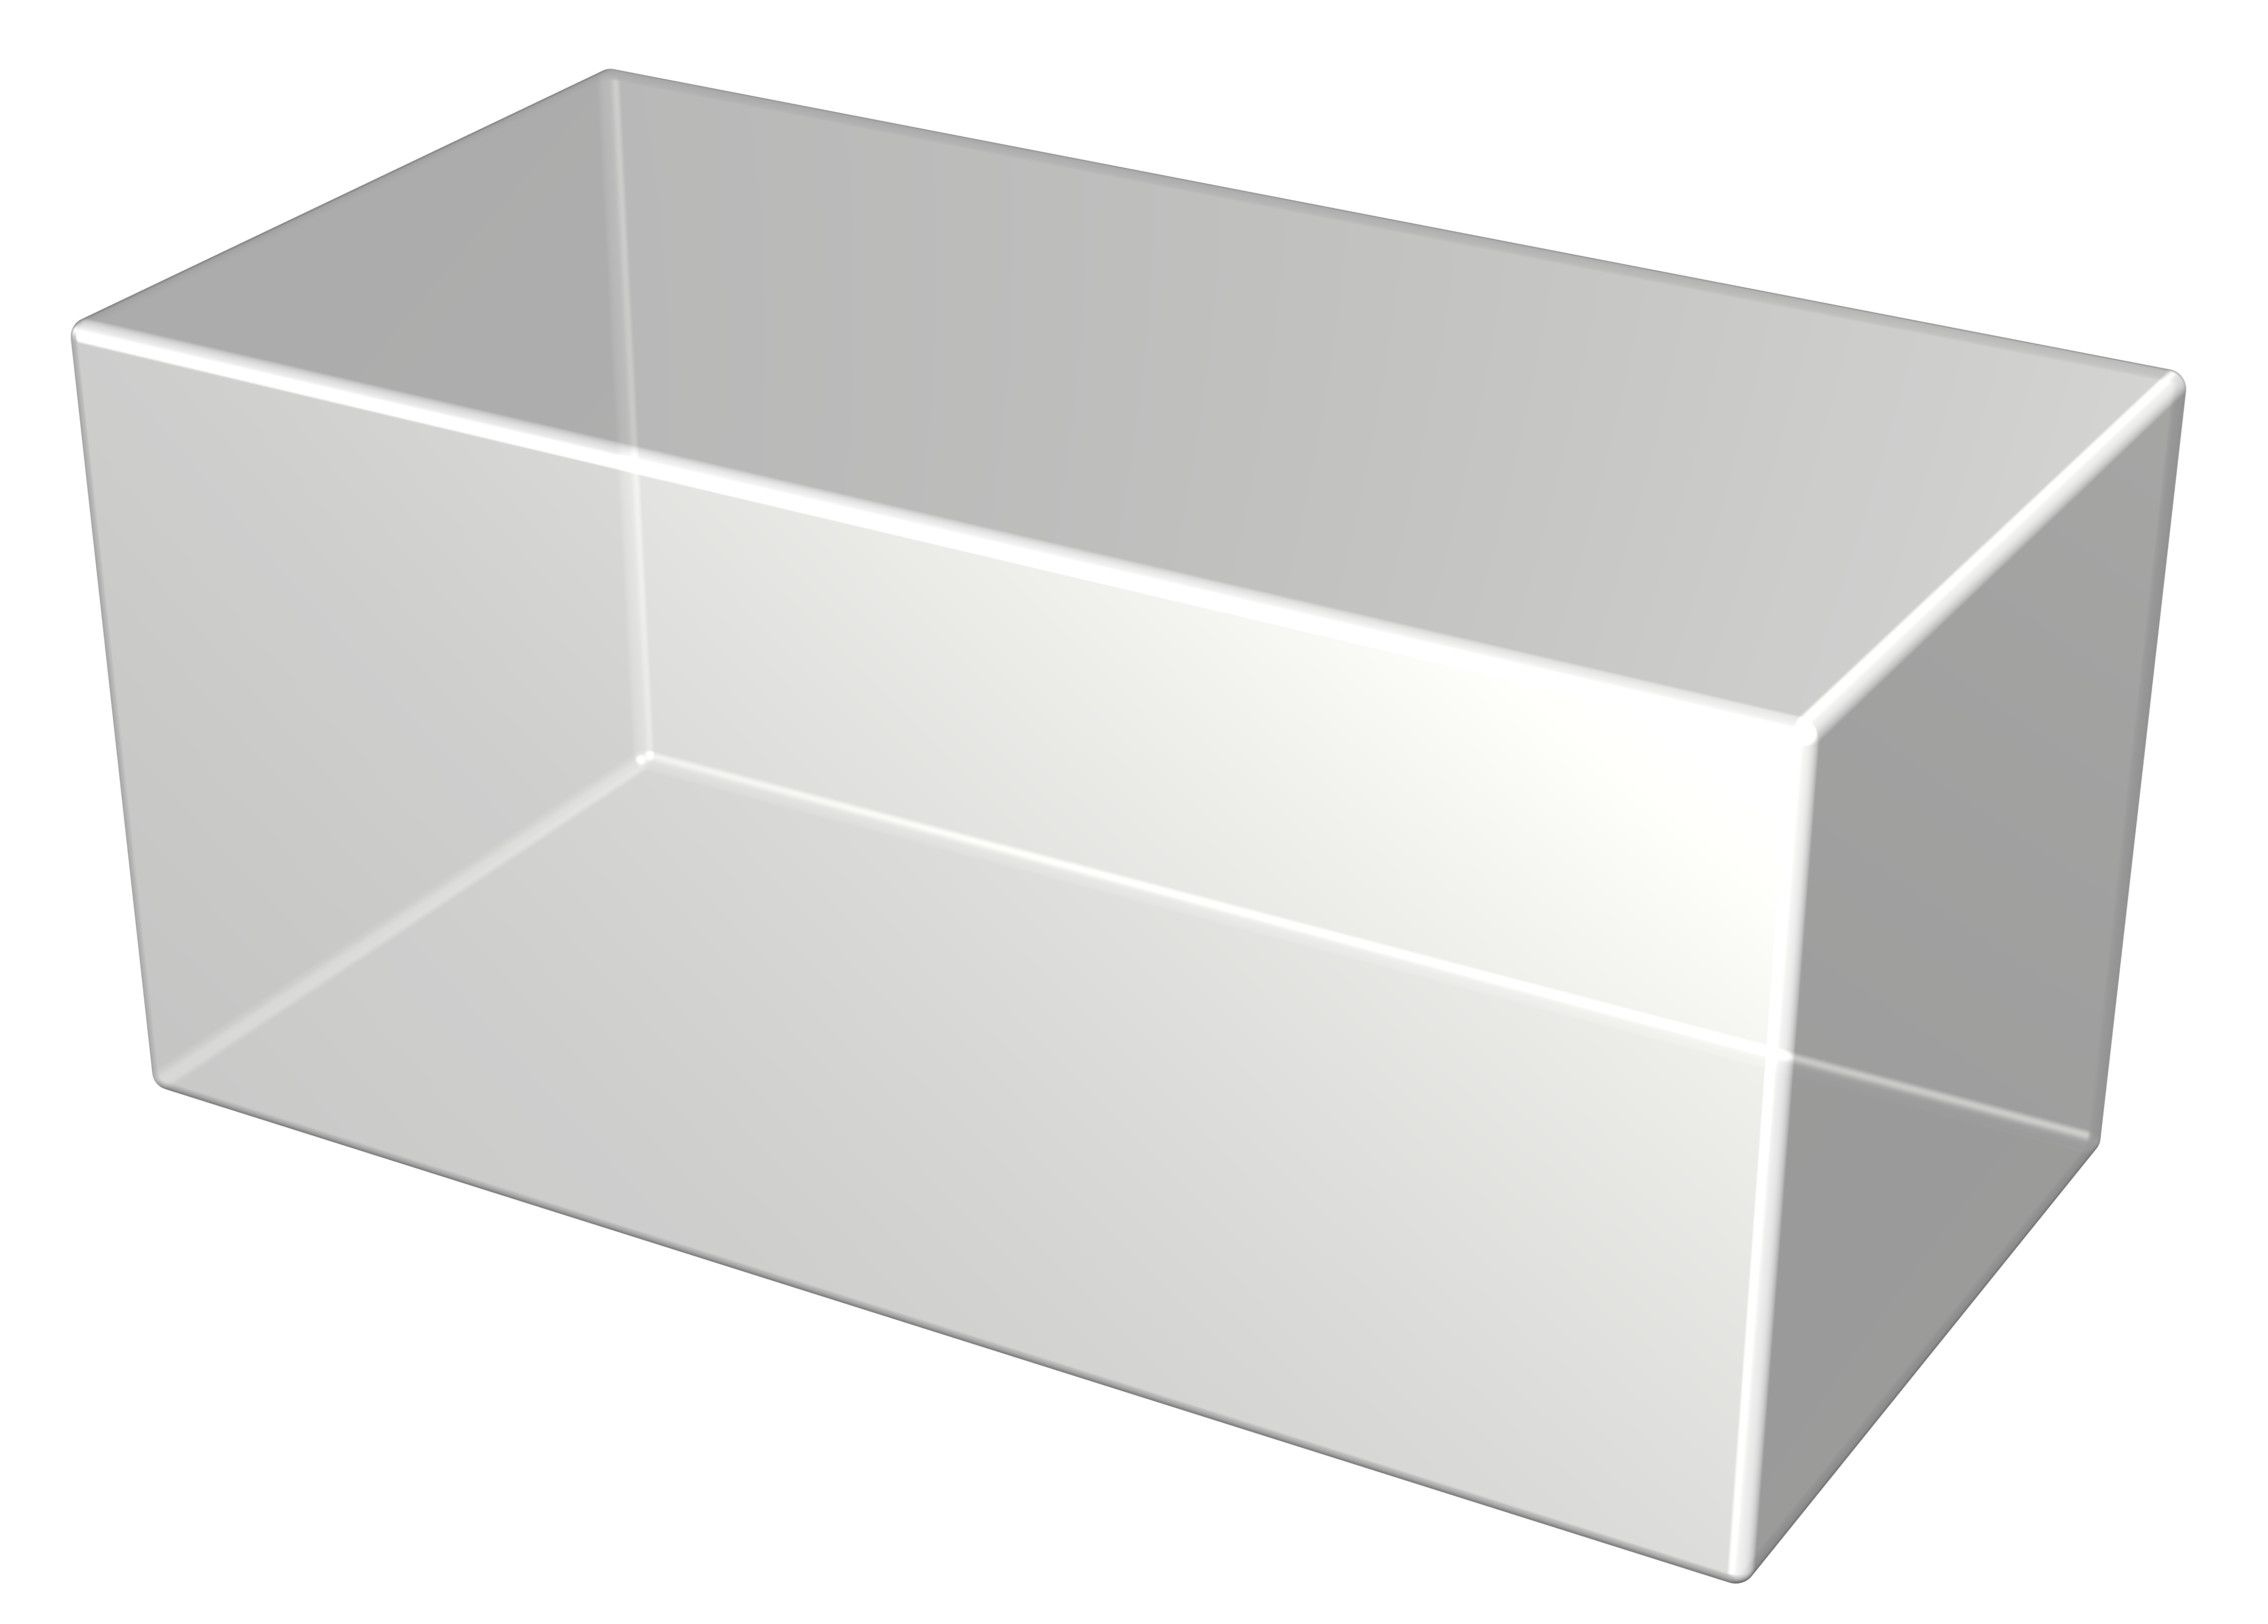 png black and white stock transparent boxes rectangular #116562258